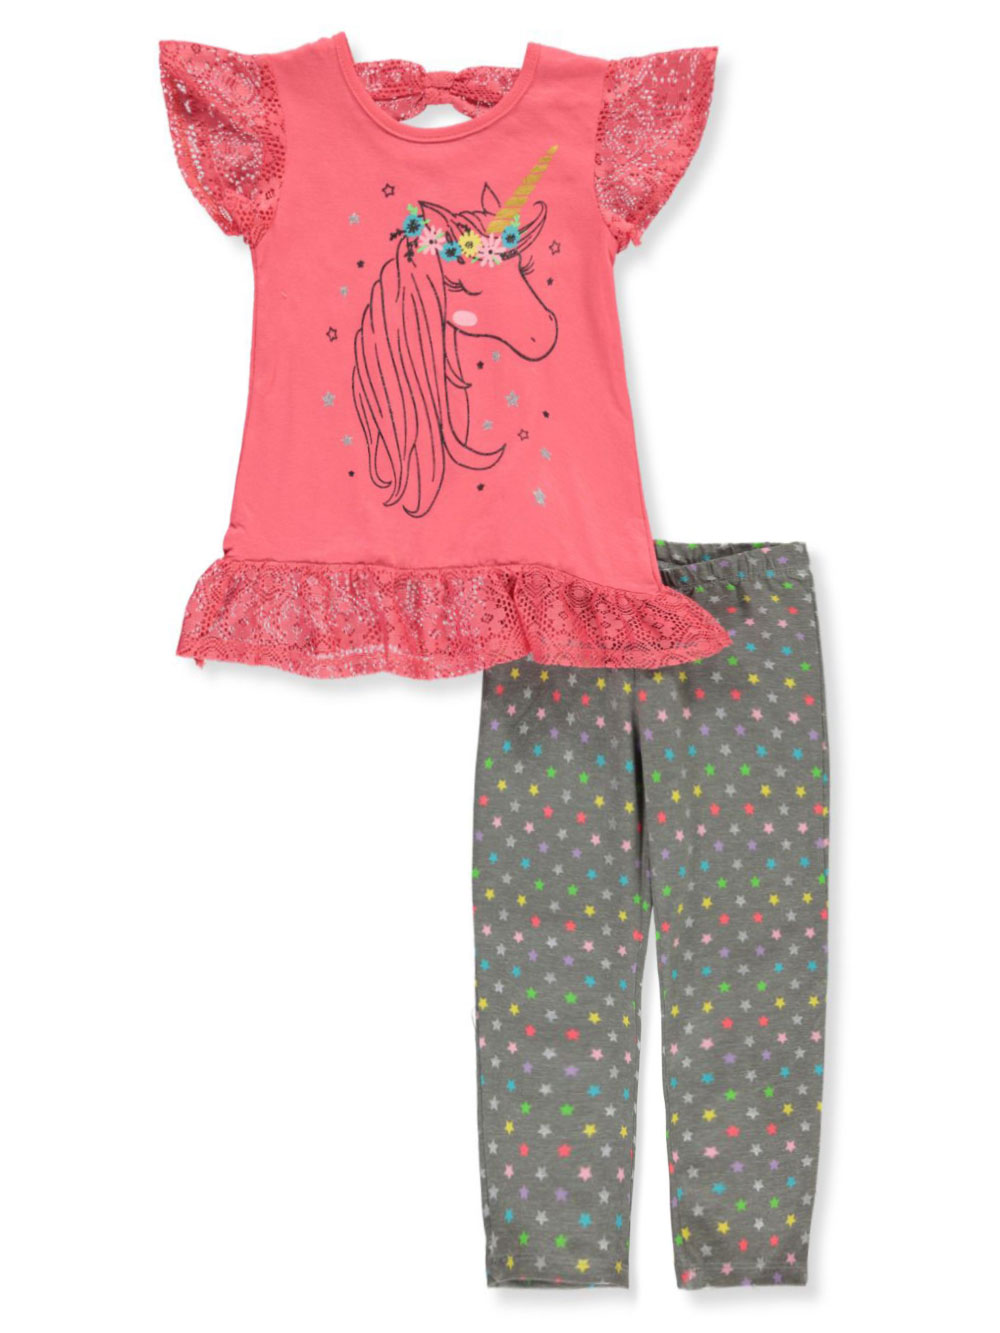 Girls Fuchsia and Multicolor Pant Sets